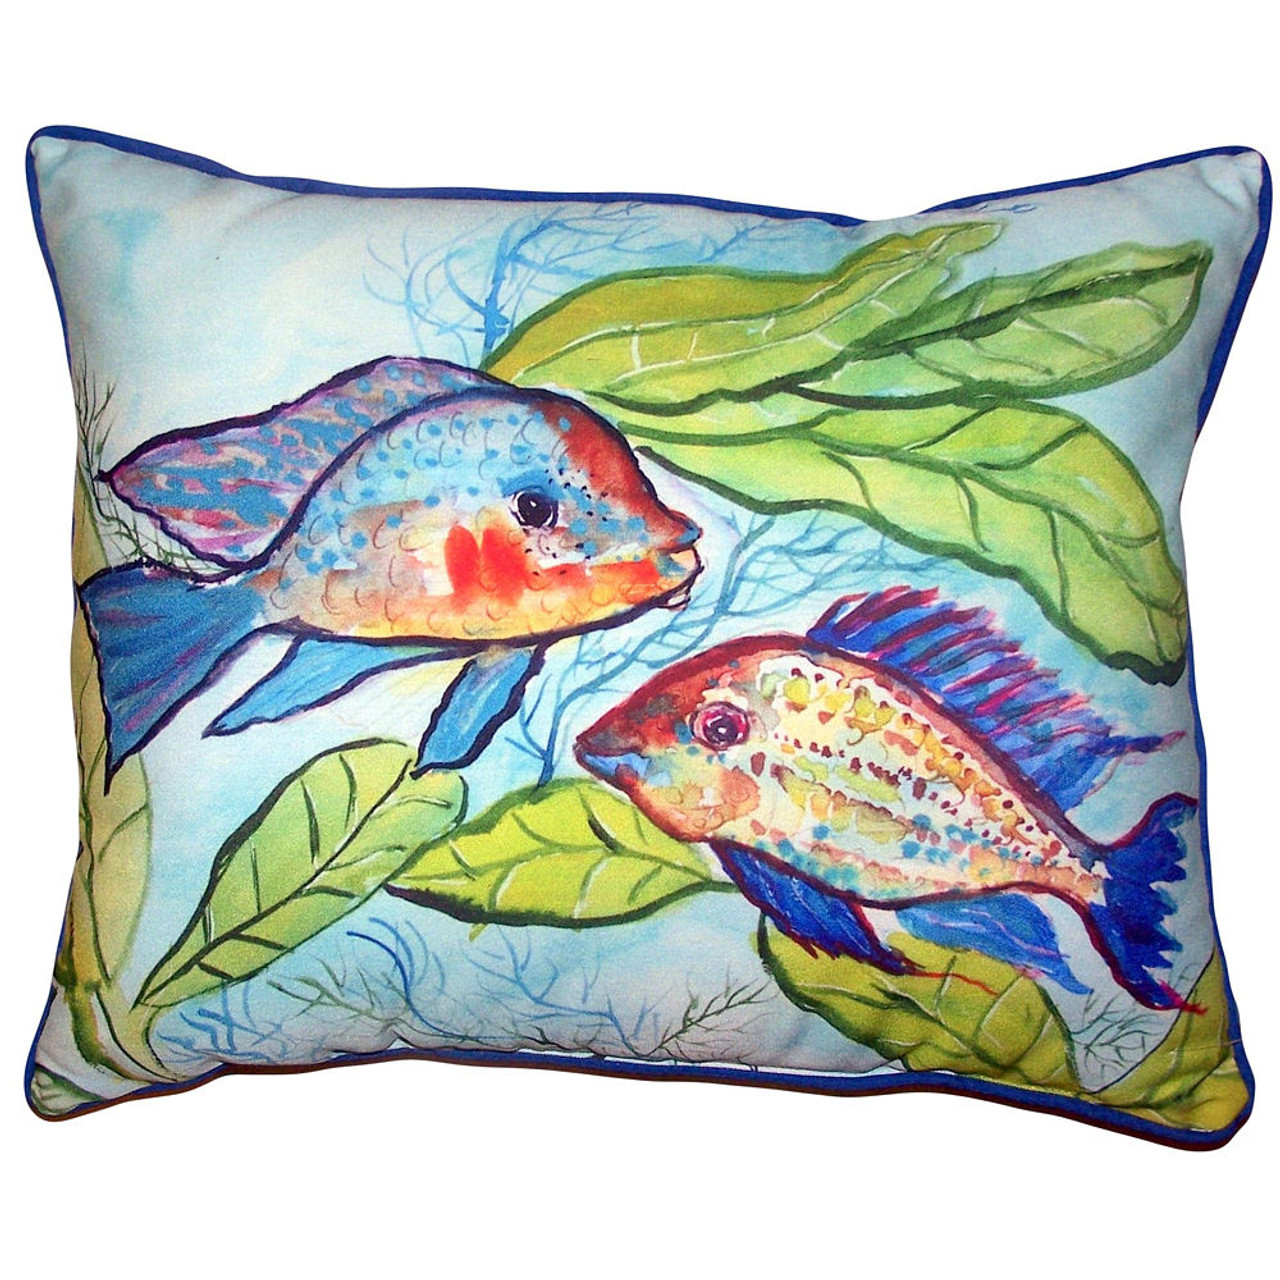 Pair of Fish Pillows